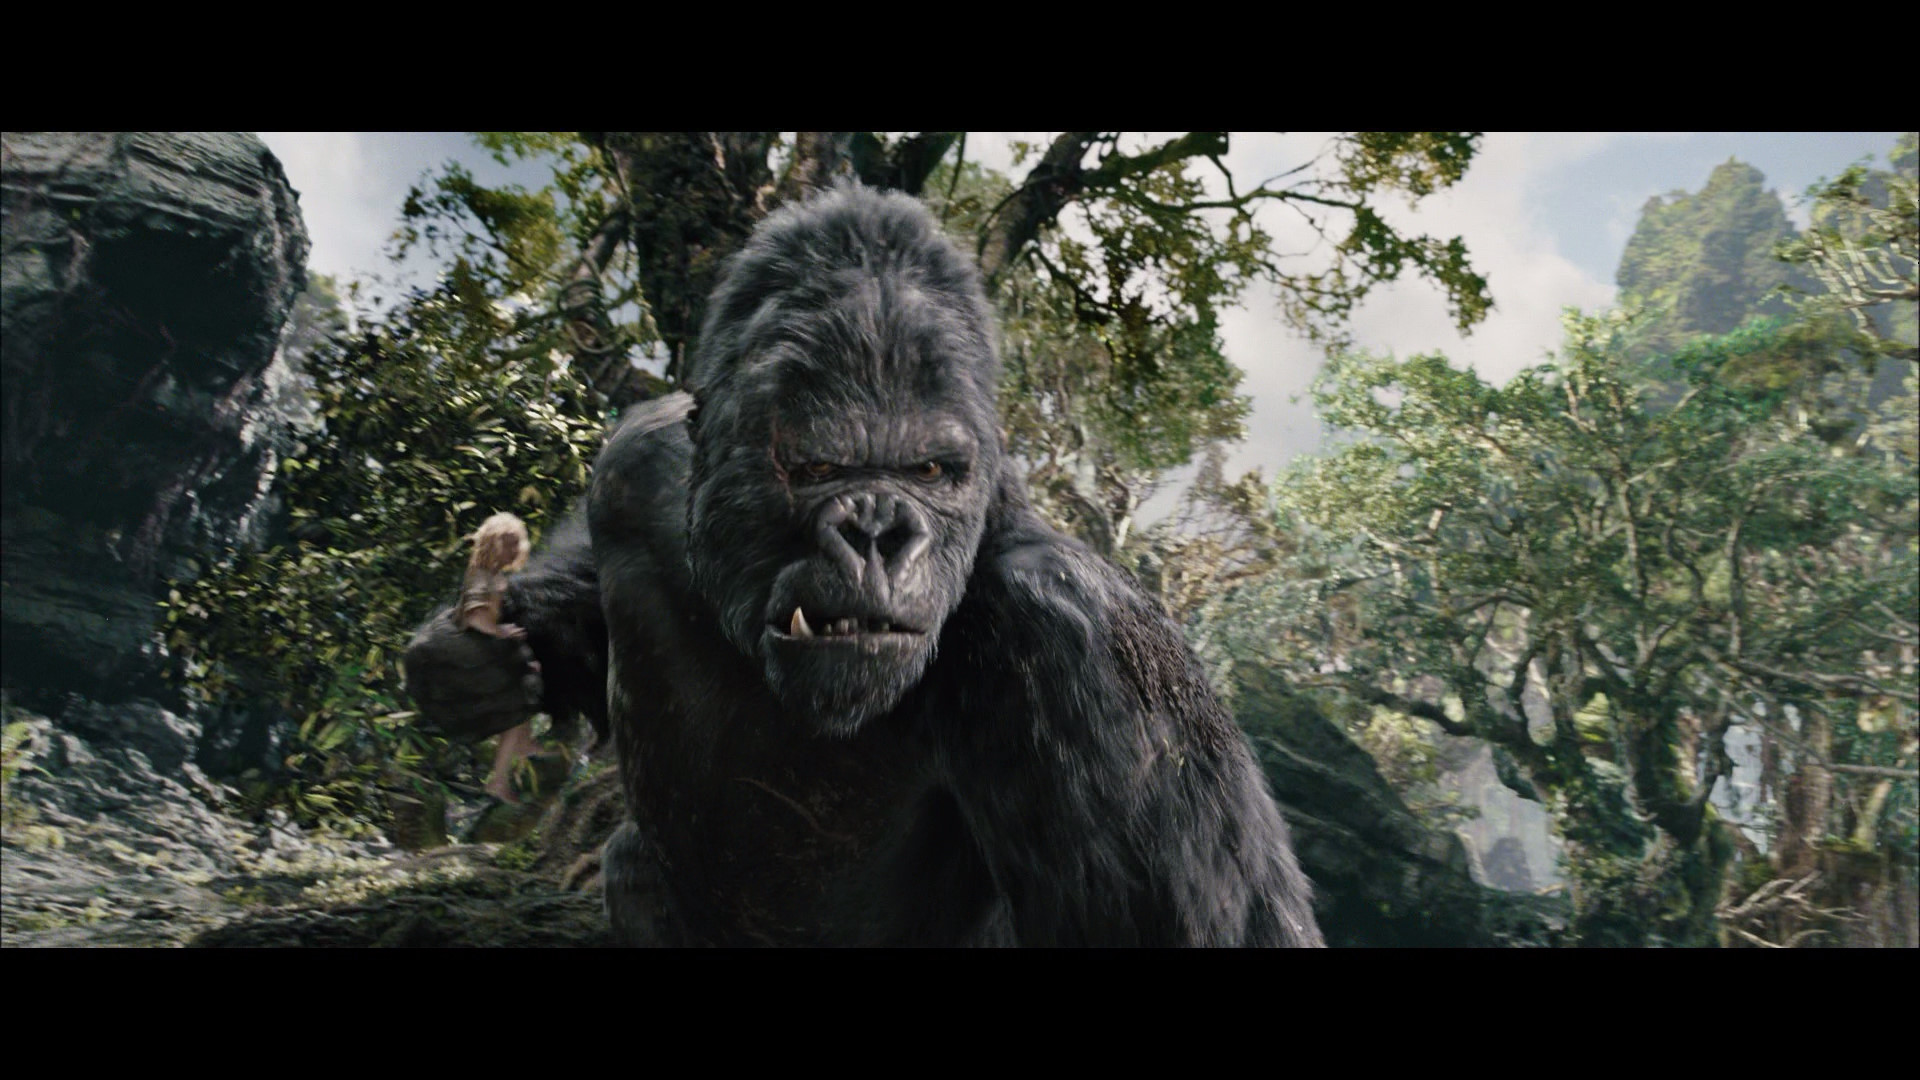 Top 10 monstros mais legais do cinema blog do heu - King kong 2005 hd wallpapers ...